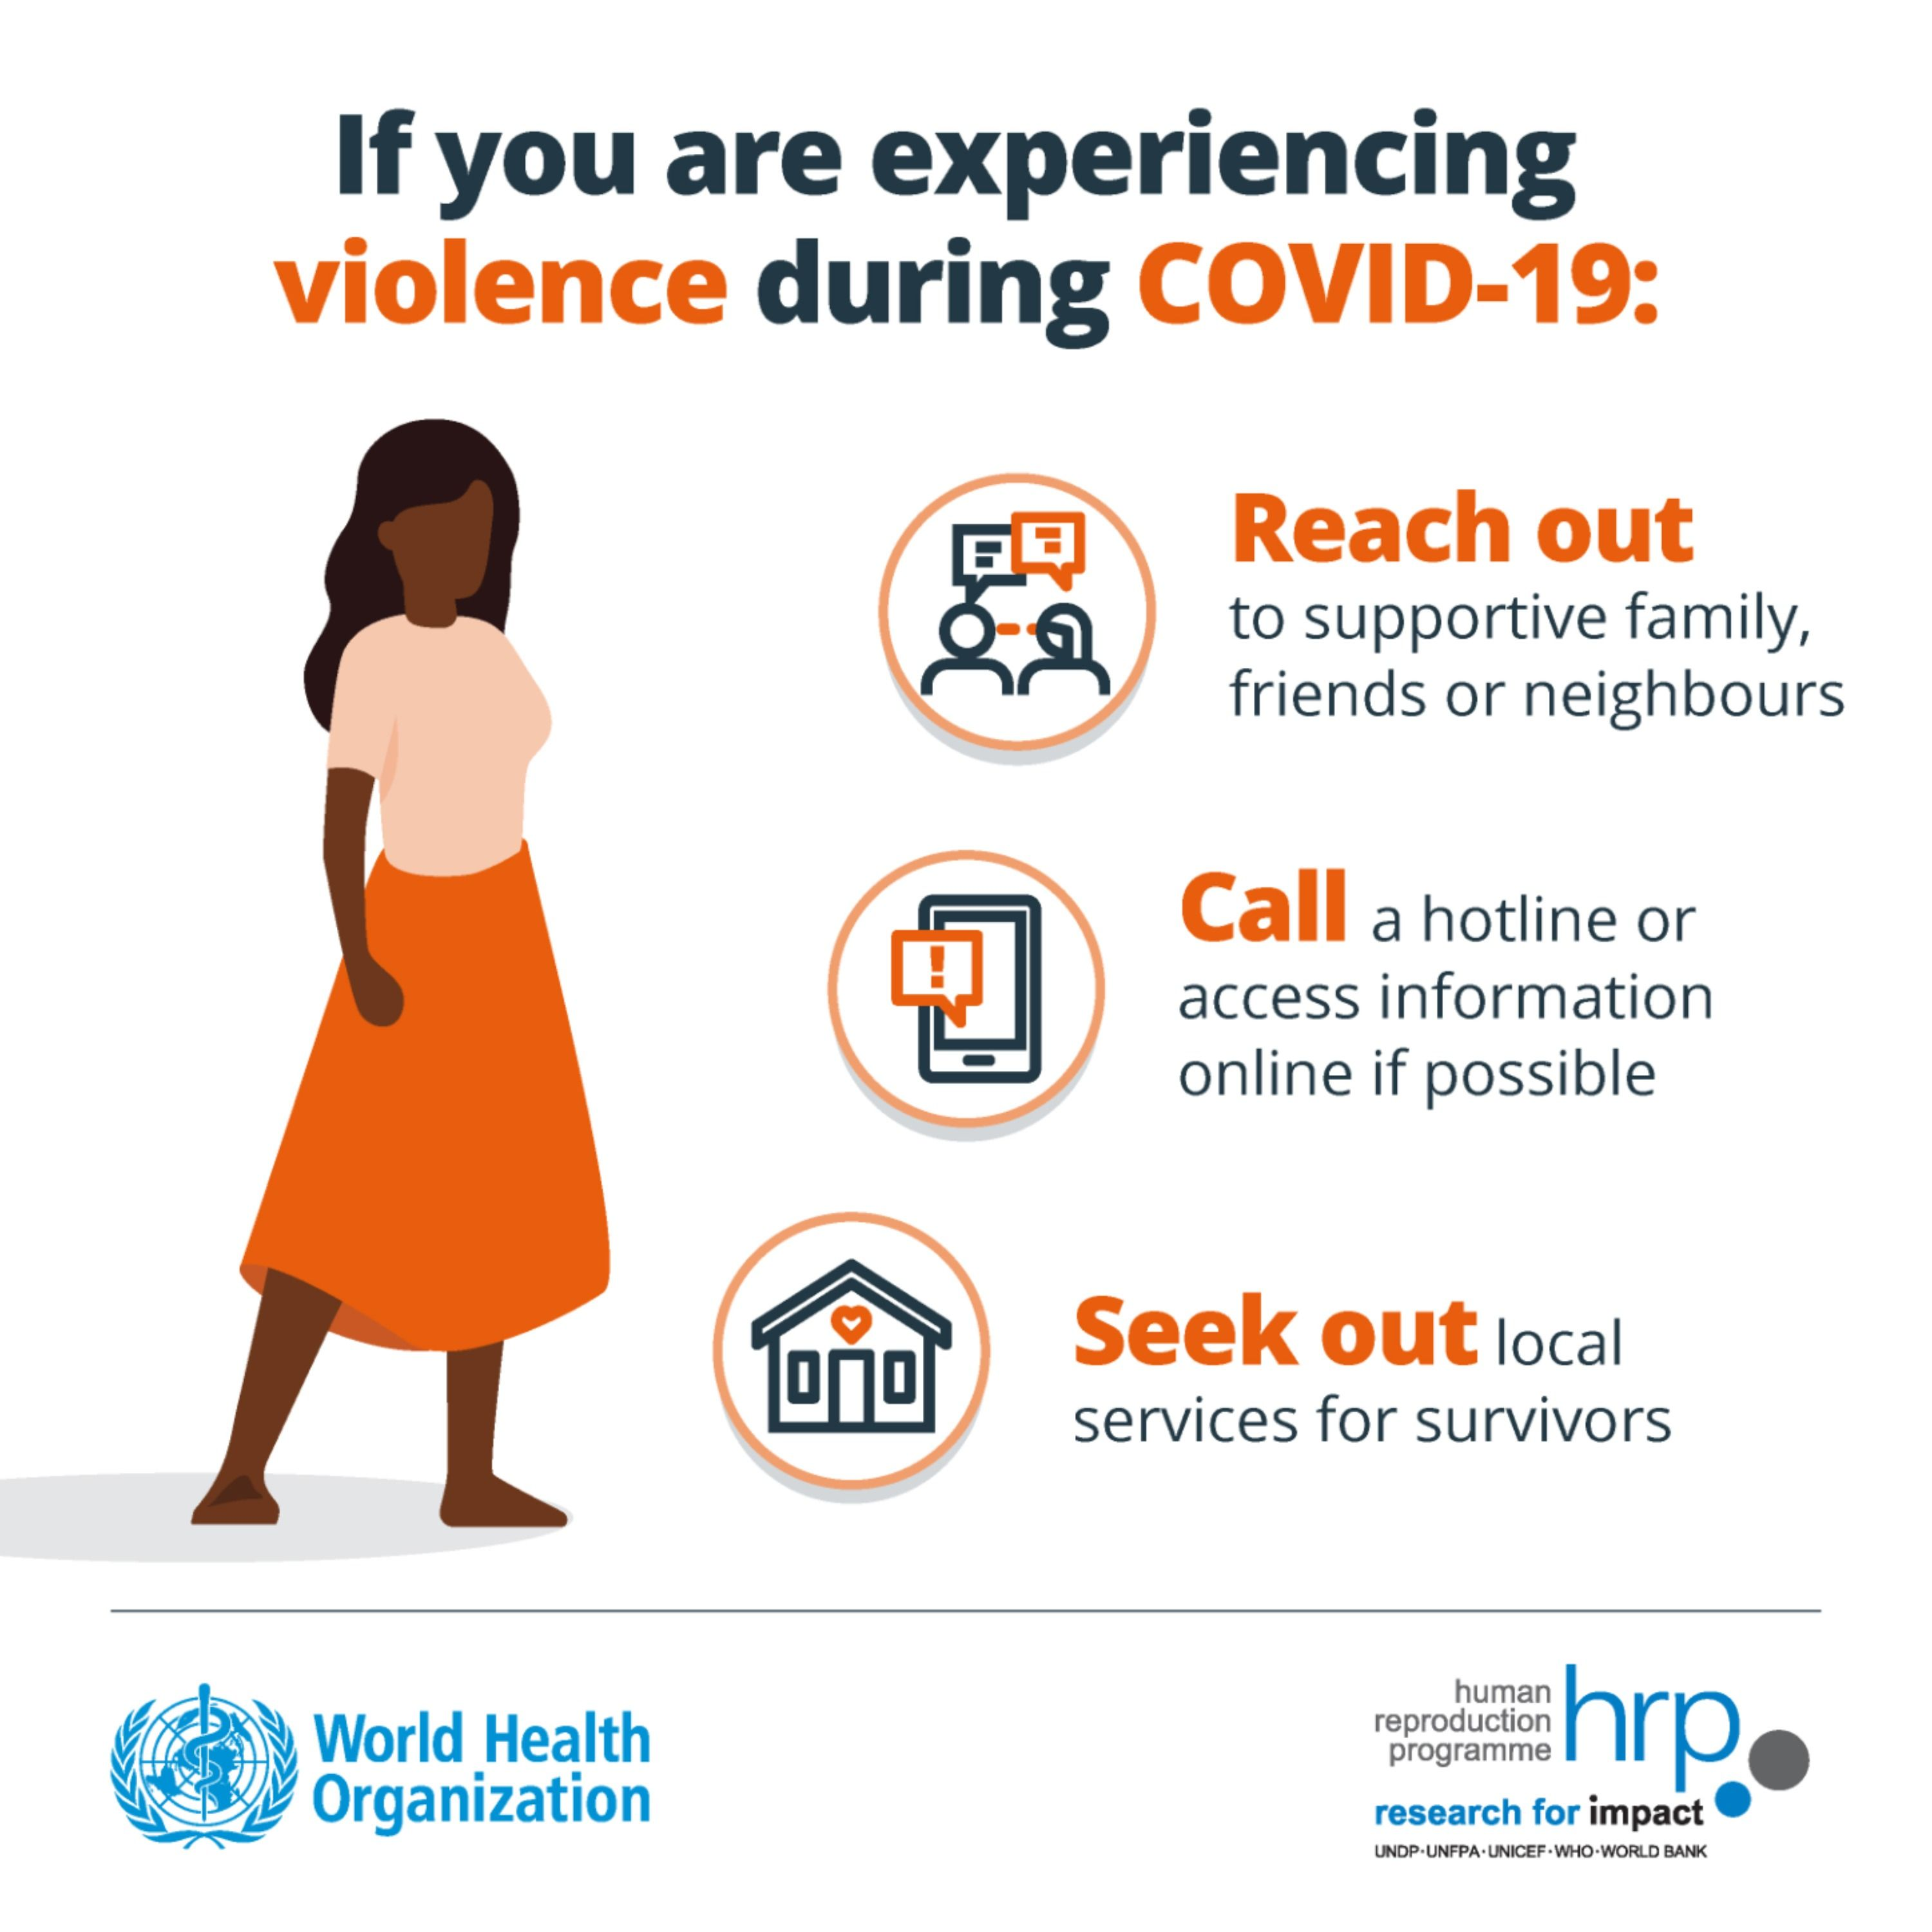 If You Are Experiencing Violence During #COVID19: 🤝 Reach